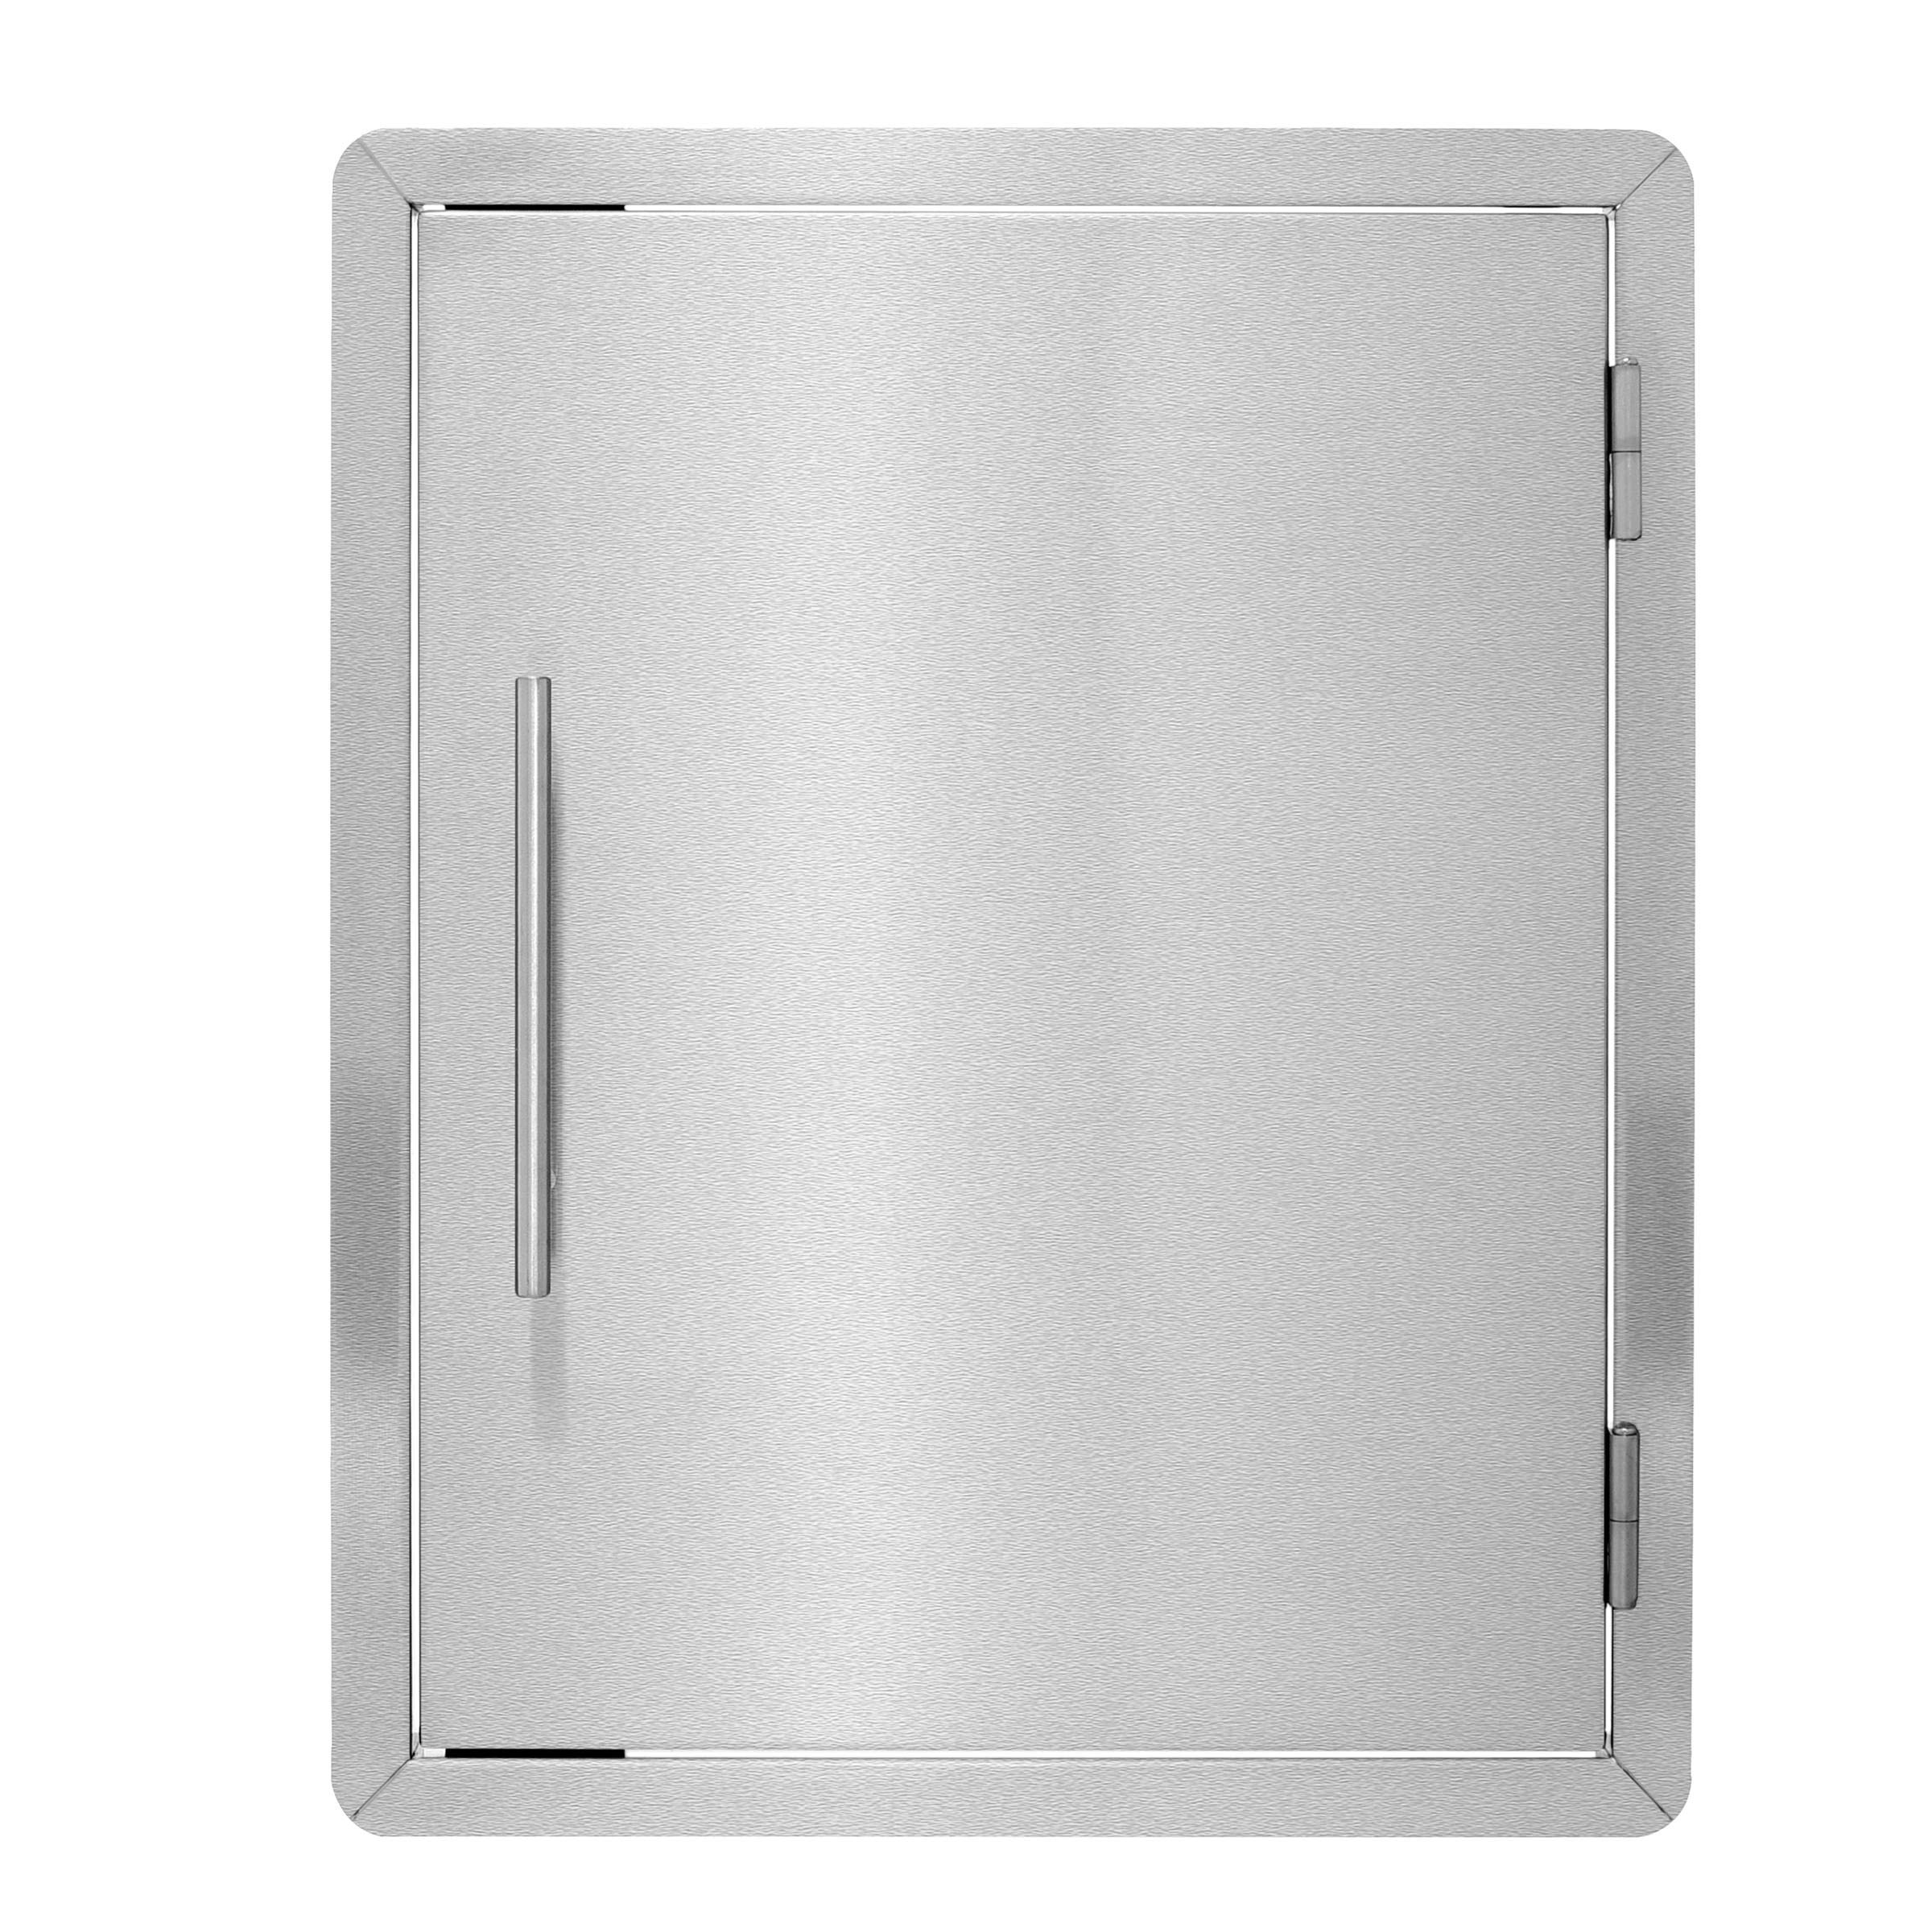 AdirHome 17⅞'' Stainless Steel Grill Single Access Double-Face Door with Towel Holder - Heavy Duty Stainless Steel Rust Resistant Access Door with Chromium Plated Handle